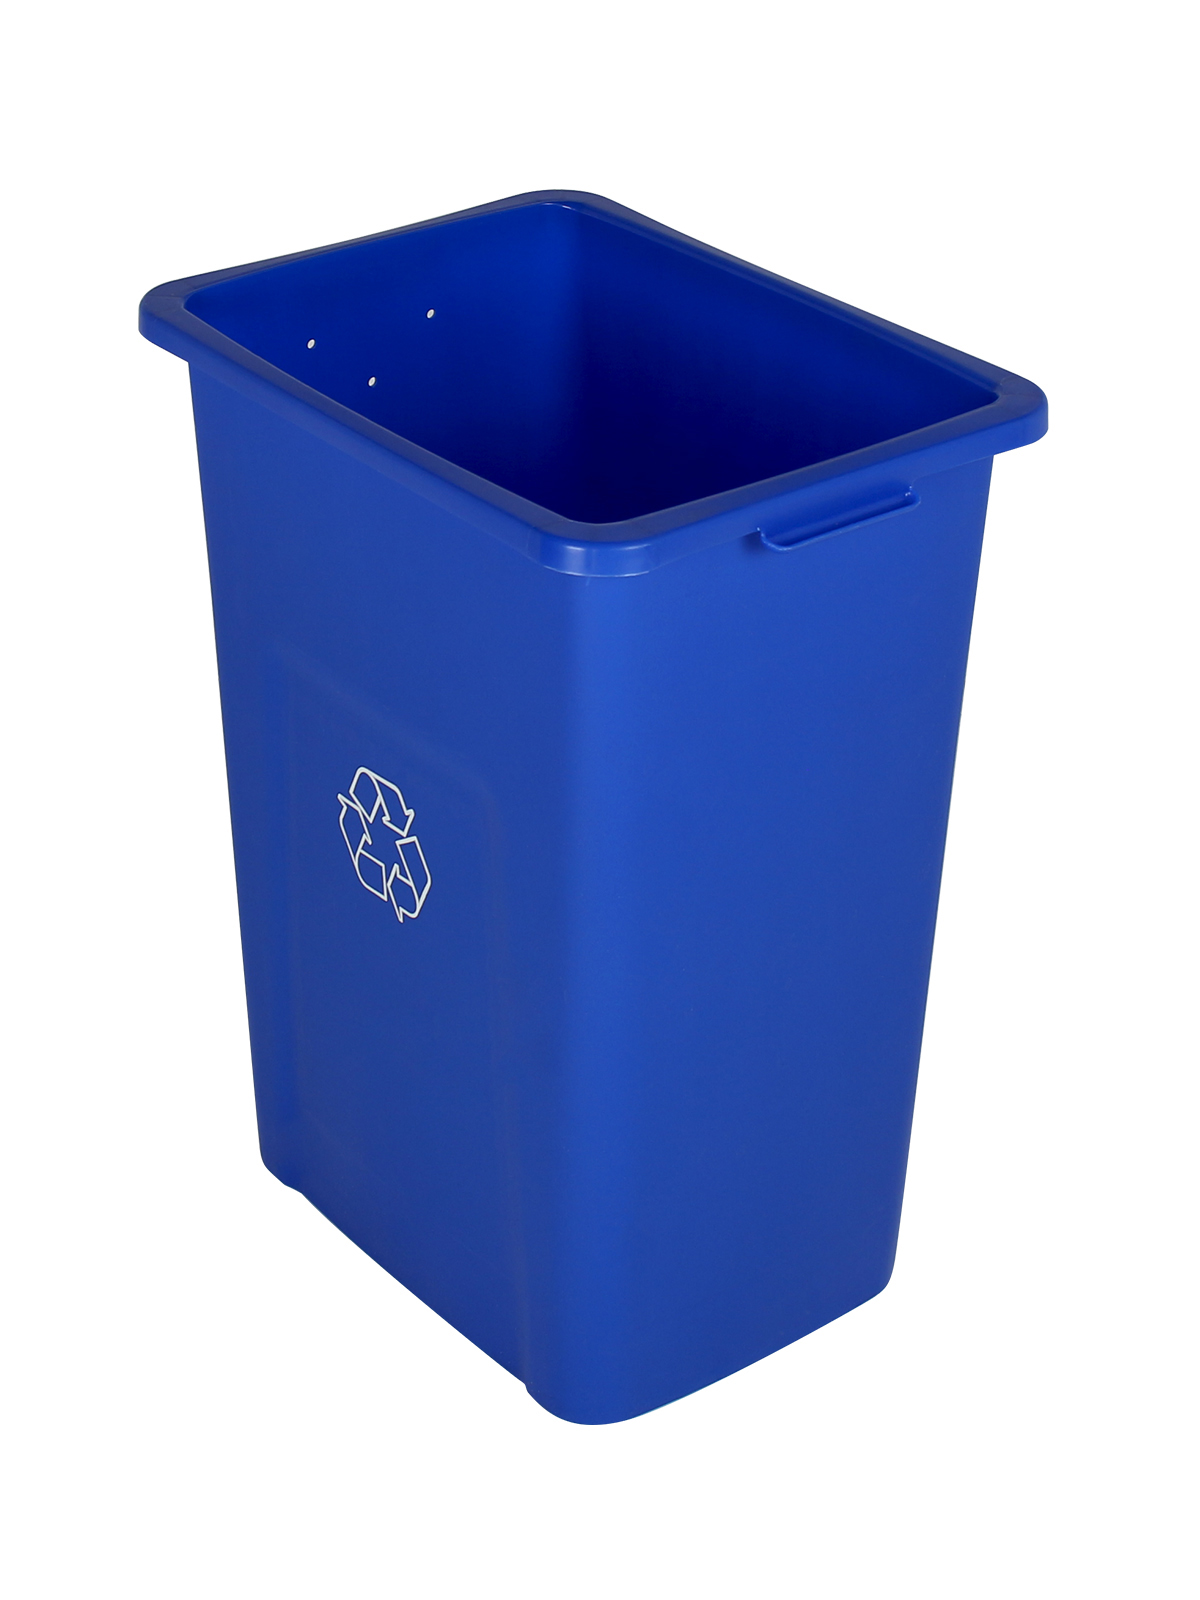 WASTE WATCHER XL - Single - Body - 27 - Mobius Loop - Royal Blue